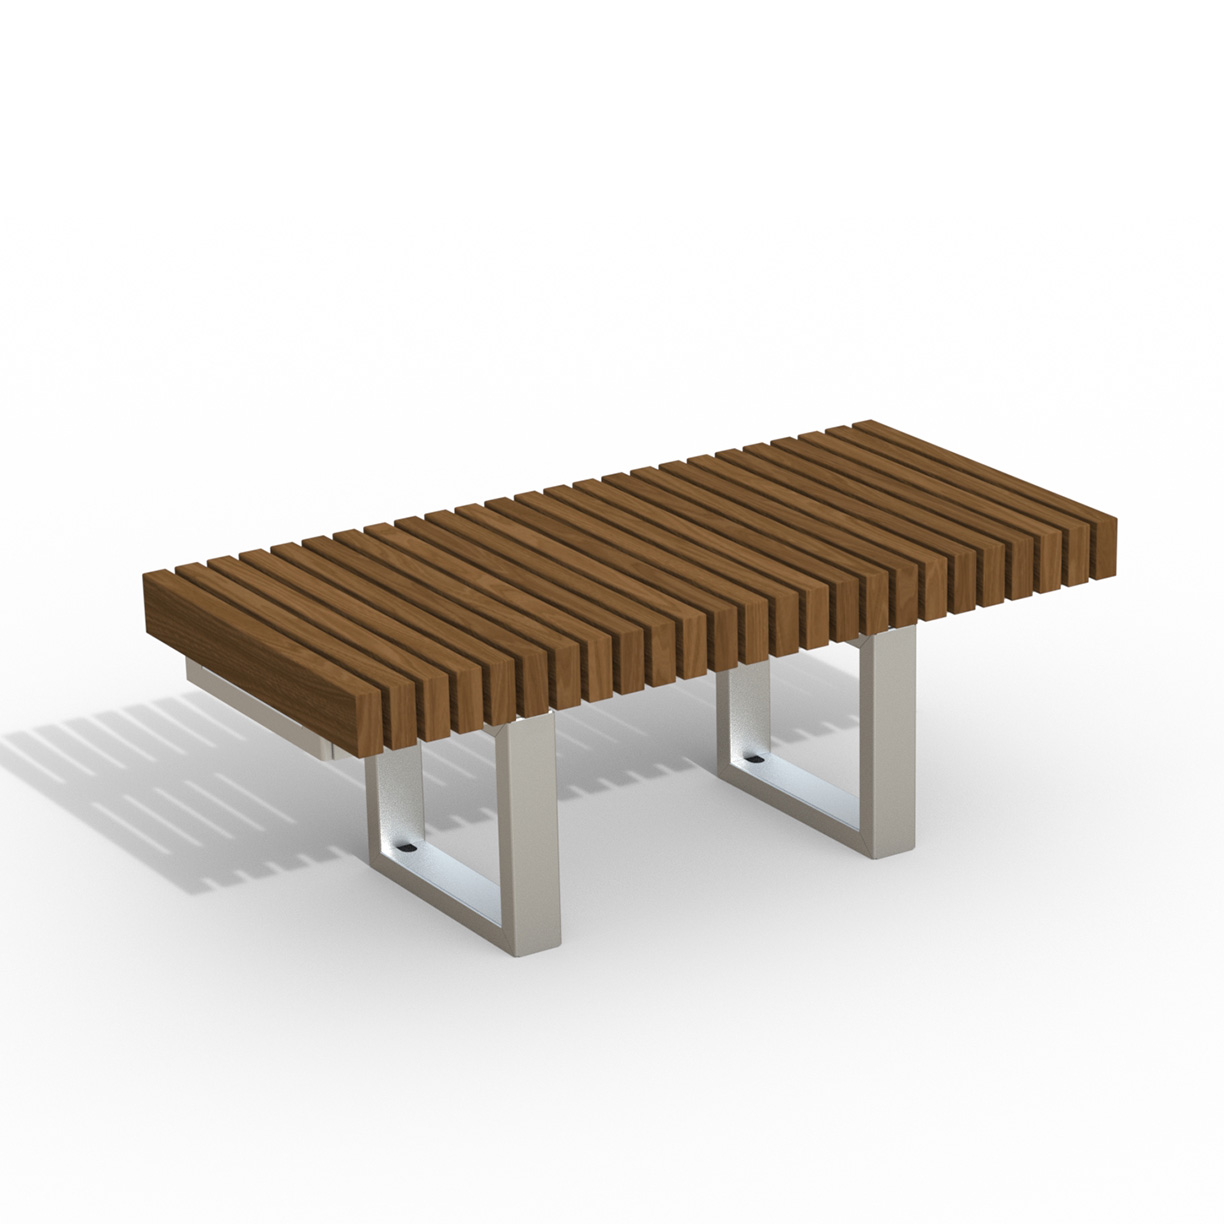 INF24L4T  Infinity Collection 2' x 4' Linear Thermory Slat Bench